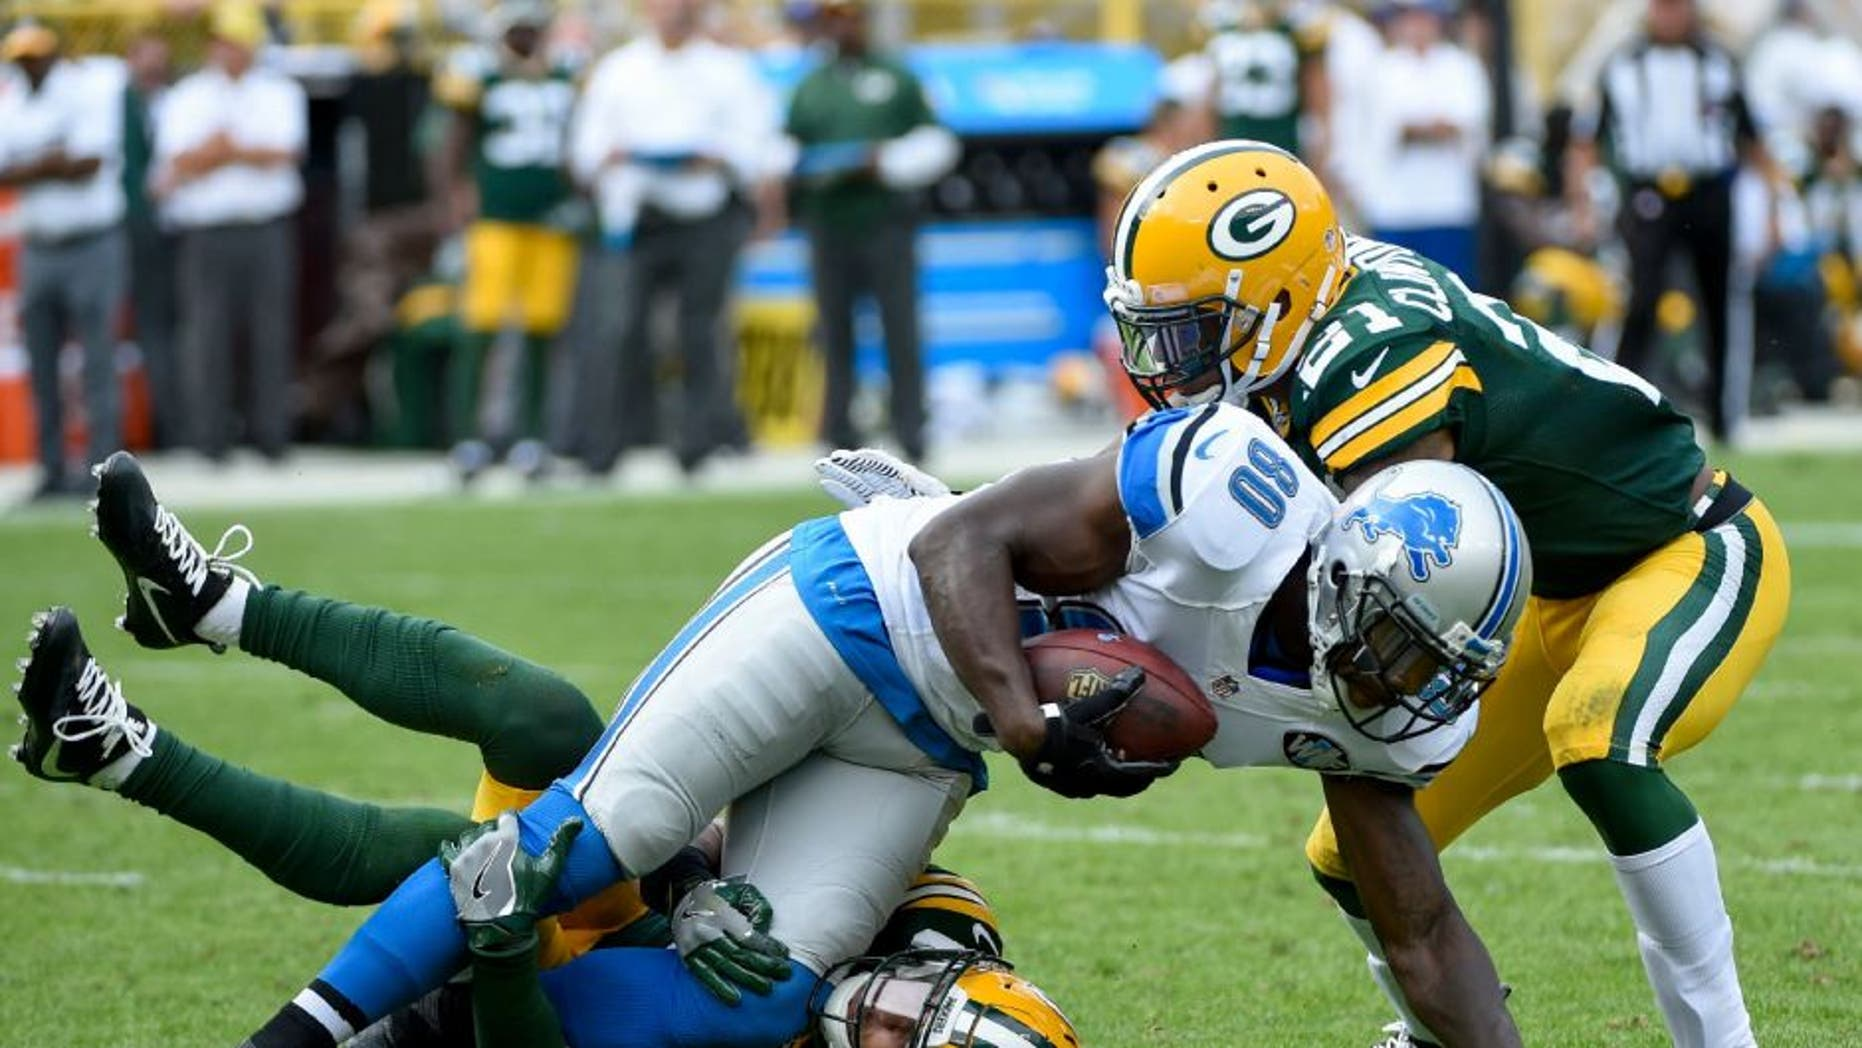 Detroit Lions wide receiver Anquan Boldin is tackled by Green Bay Packers defensive back Micah Hyde and safety Ha Ha Clinton-Dix.